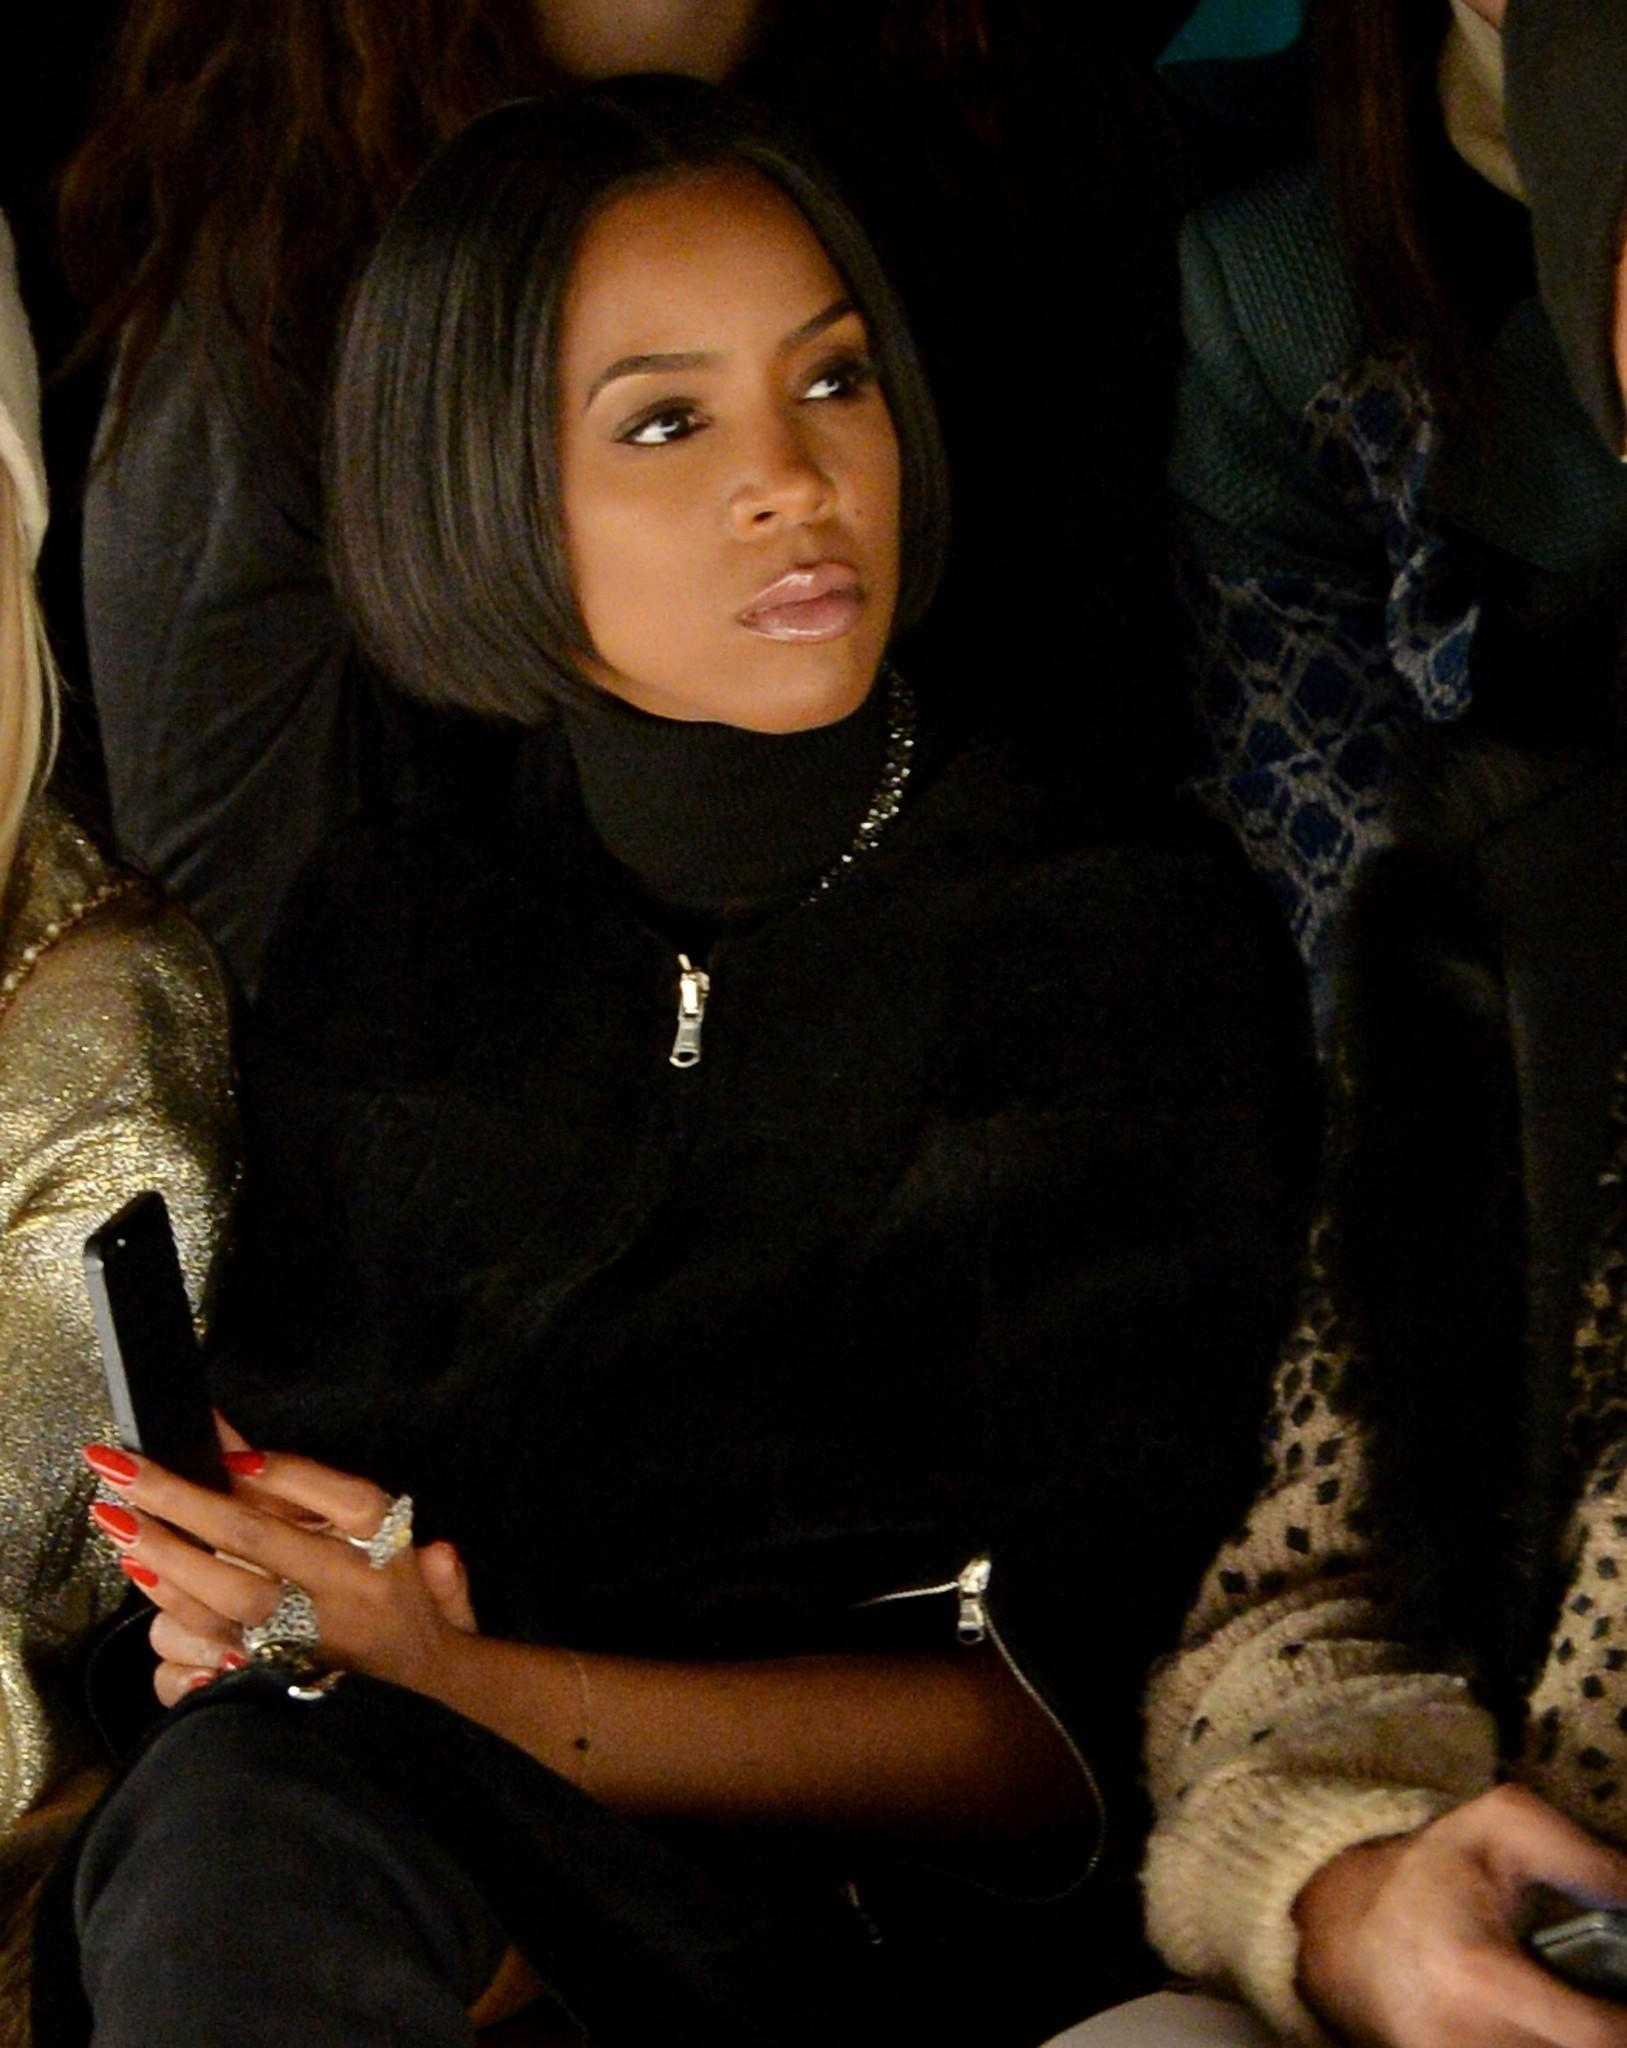 Singer Kelly Rowland attends the Kaufmanfranco fashion show during Fashion Week in New York City.